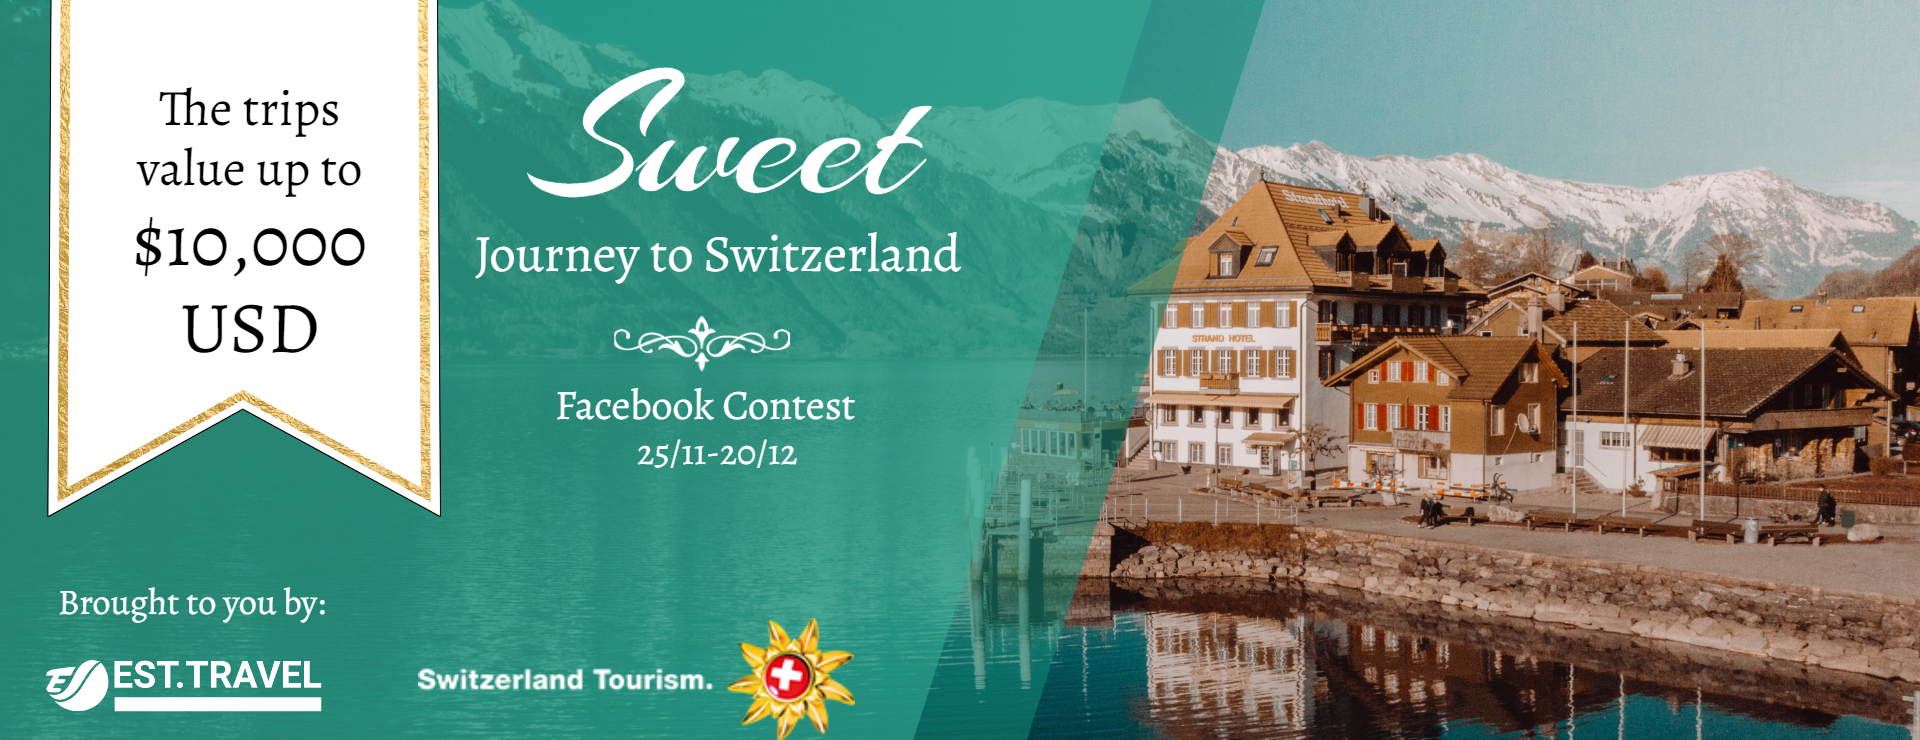 Sweet Journey to Switzerland Facebook contest